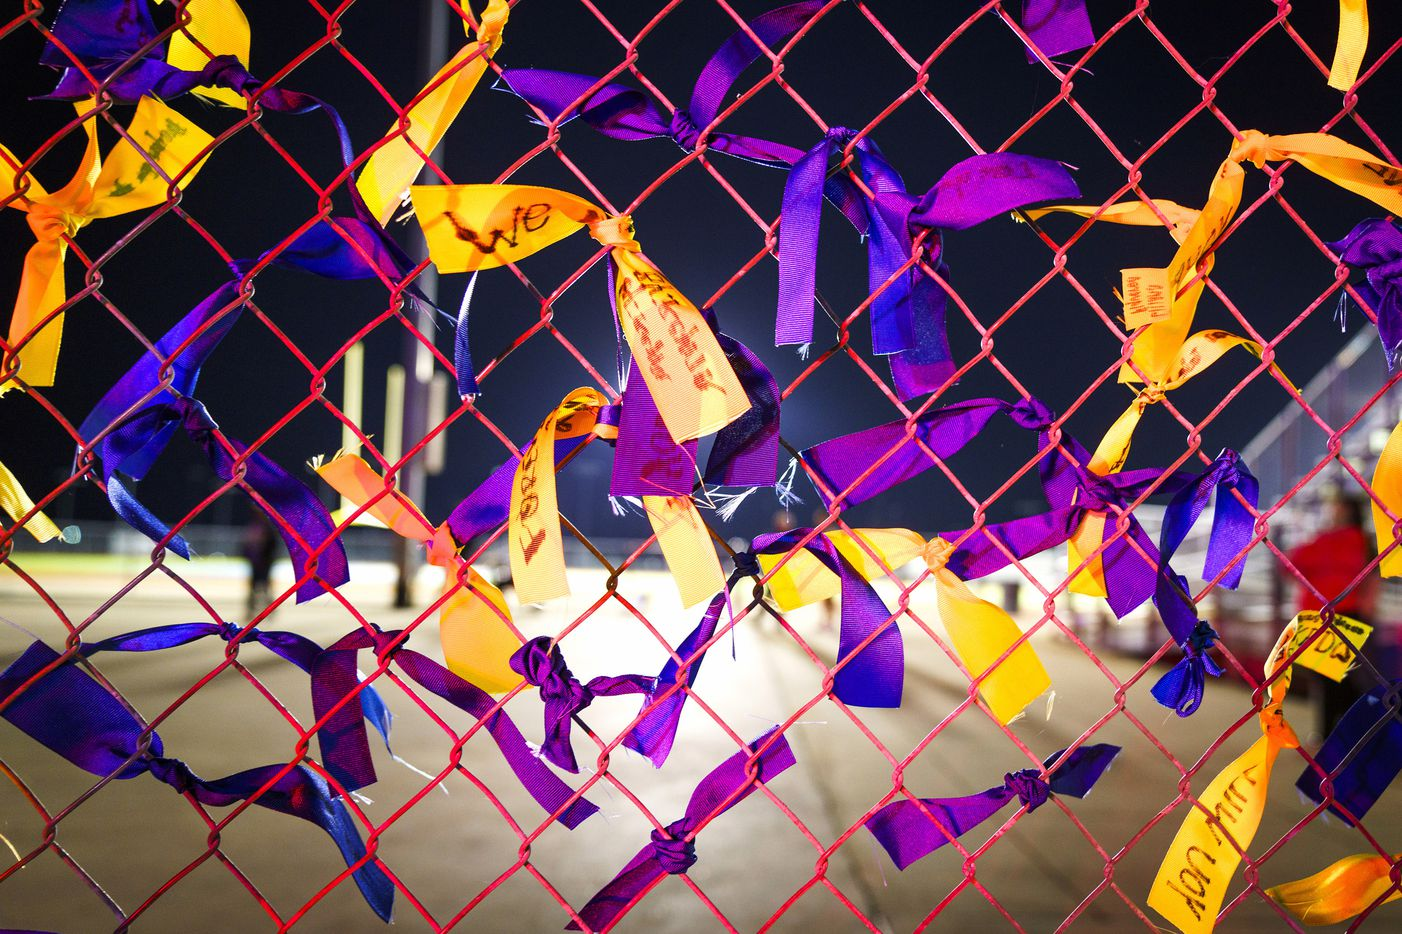 Ribbons in memory of  four students who were killed in a two-vehicle crash Tuesday fill the fence of the Community ISD football stadium following a vigil on Wednesday, Nov. 6, 2019, in Nevada, Texas.